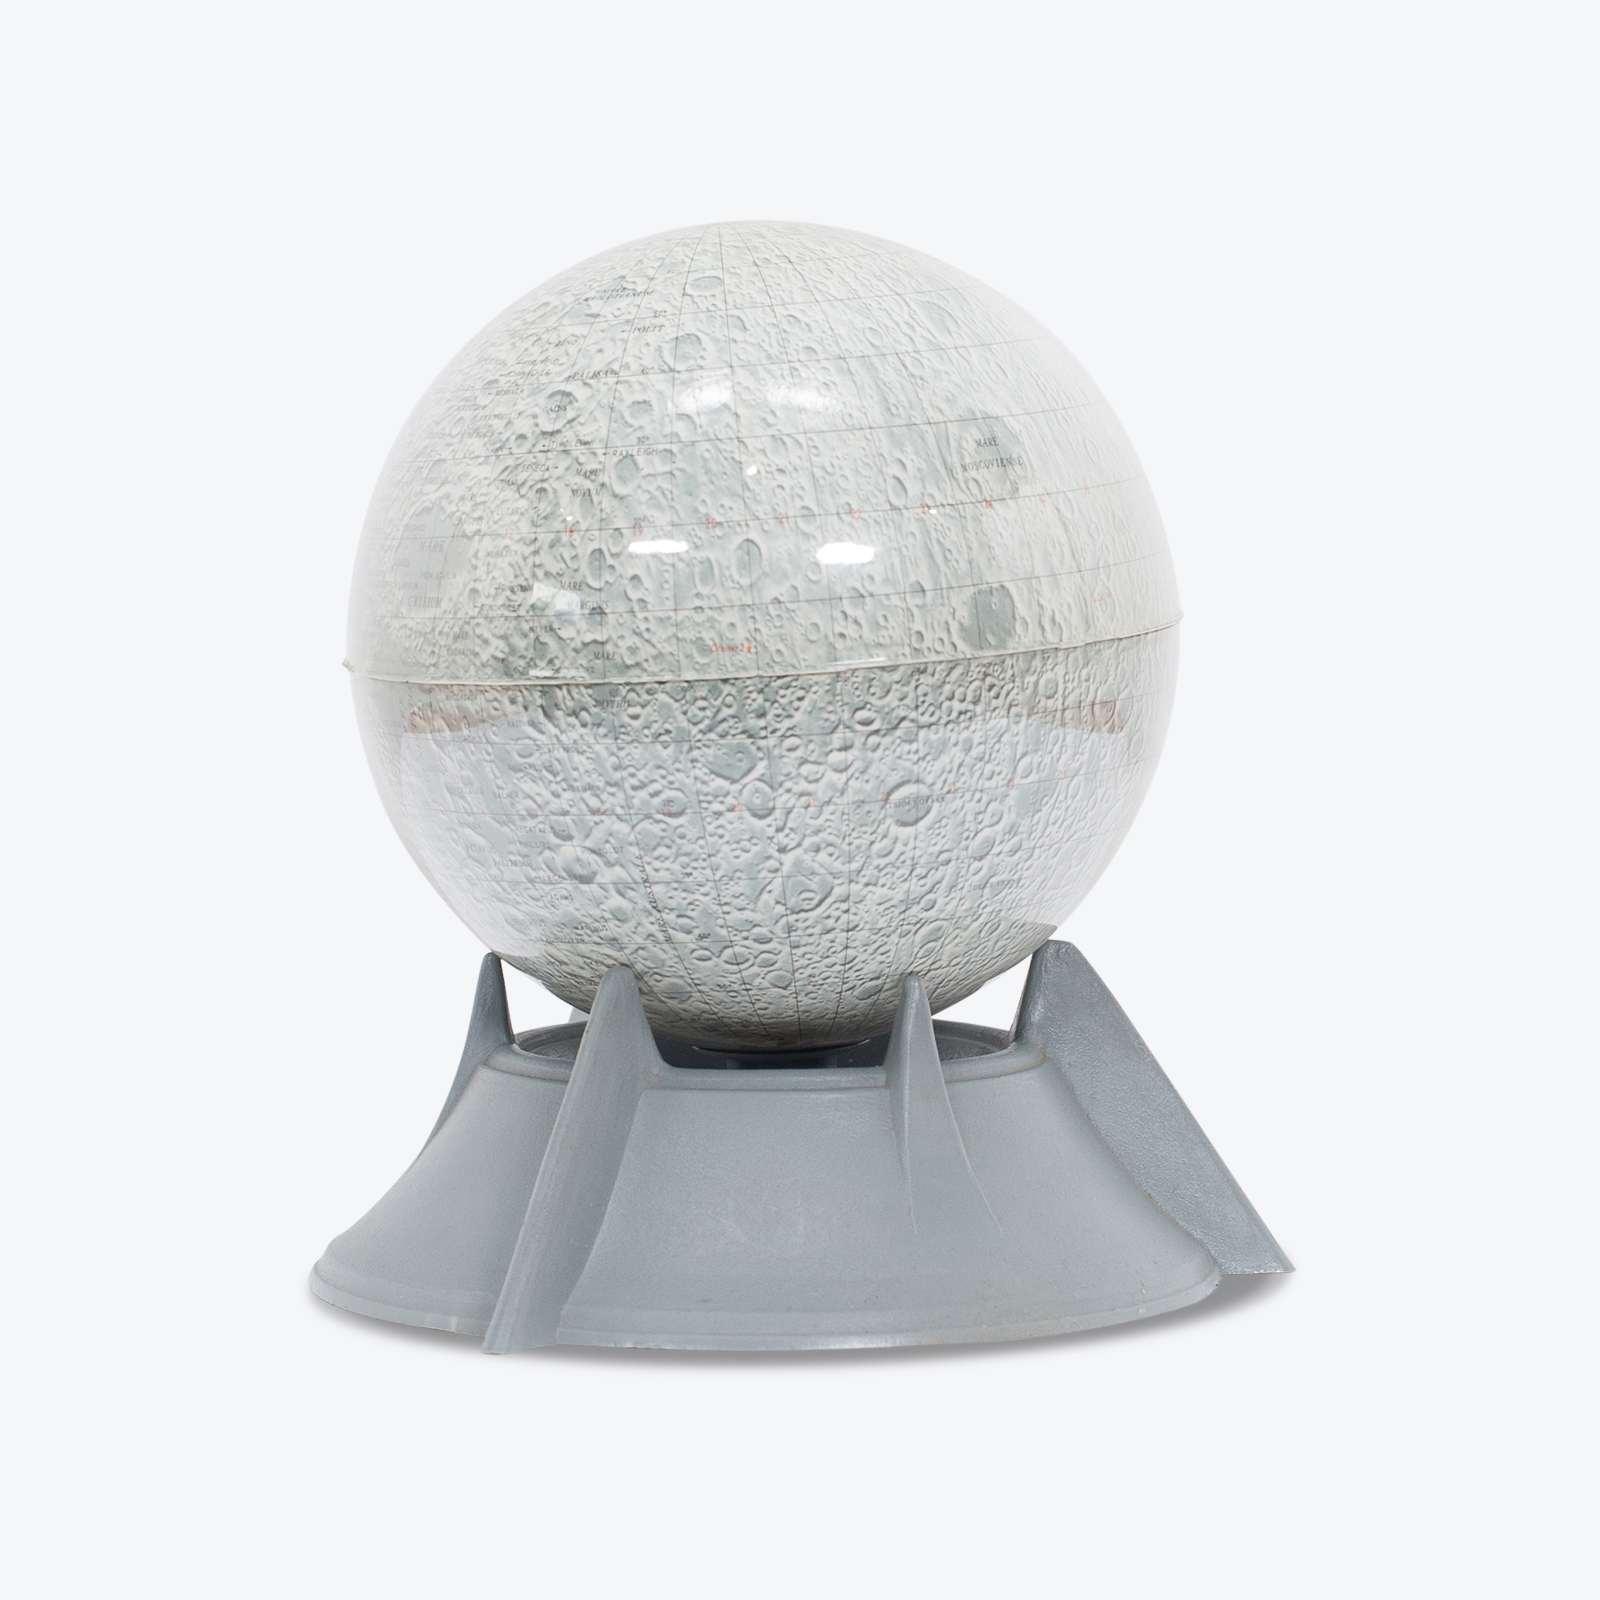 Moon Lamp With Stand, 1950s, The Netherlands Hero